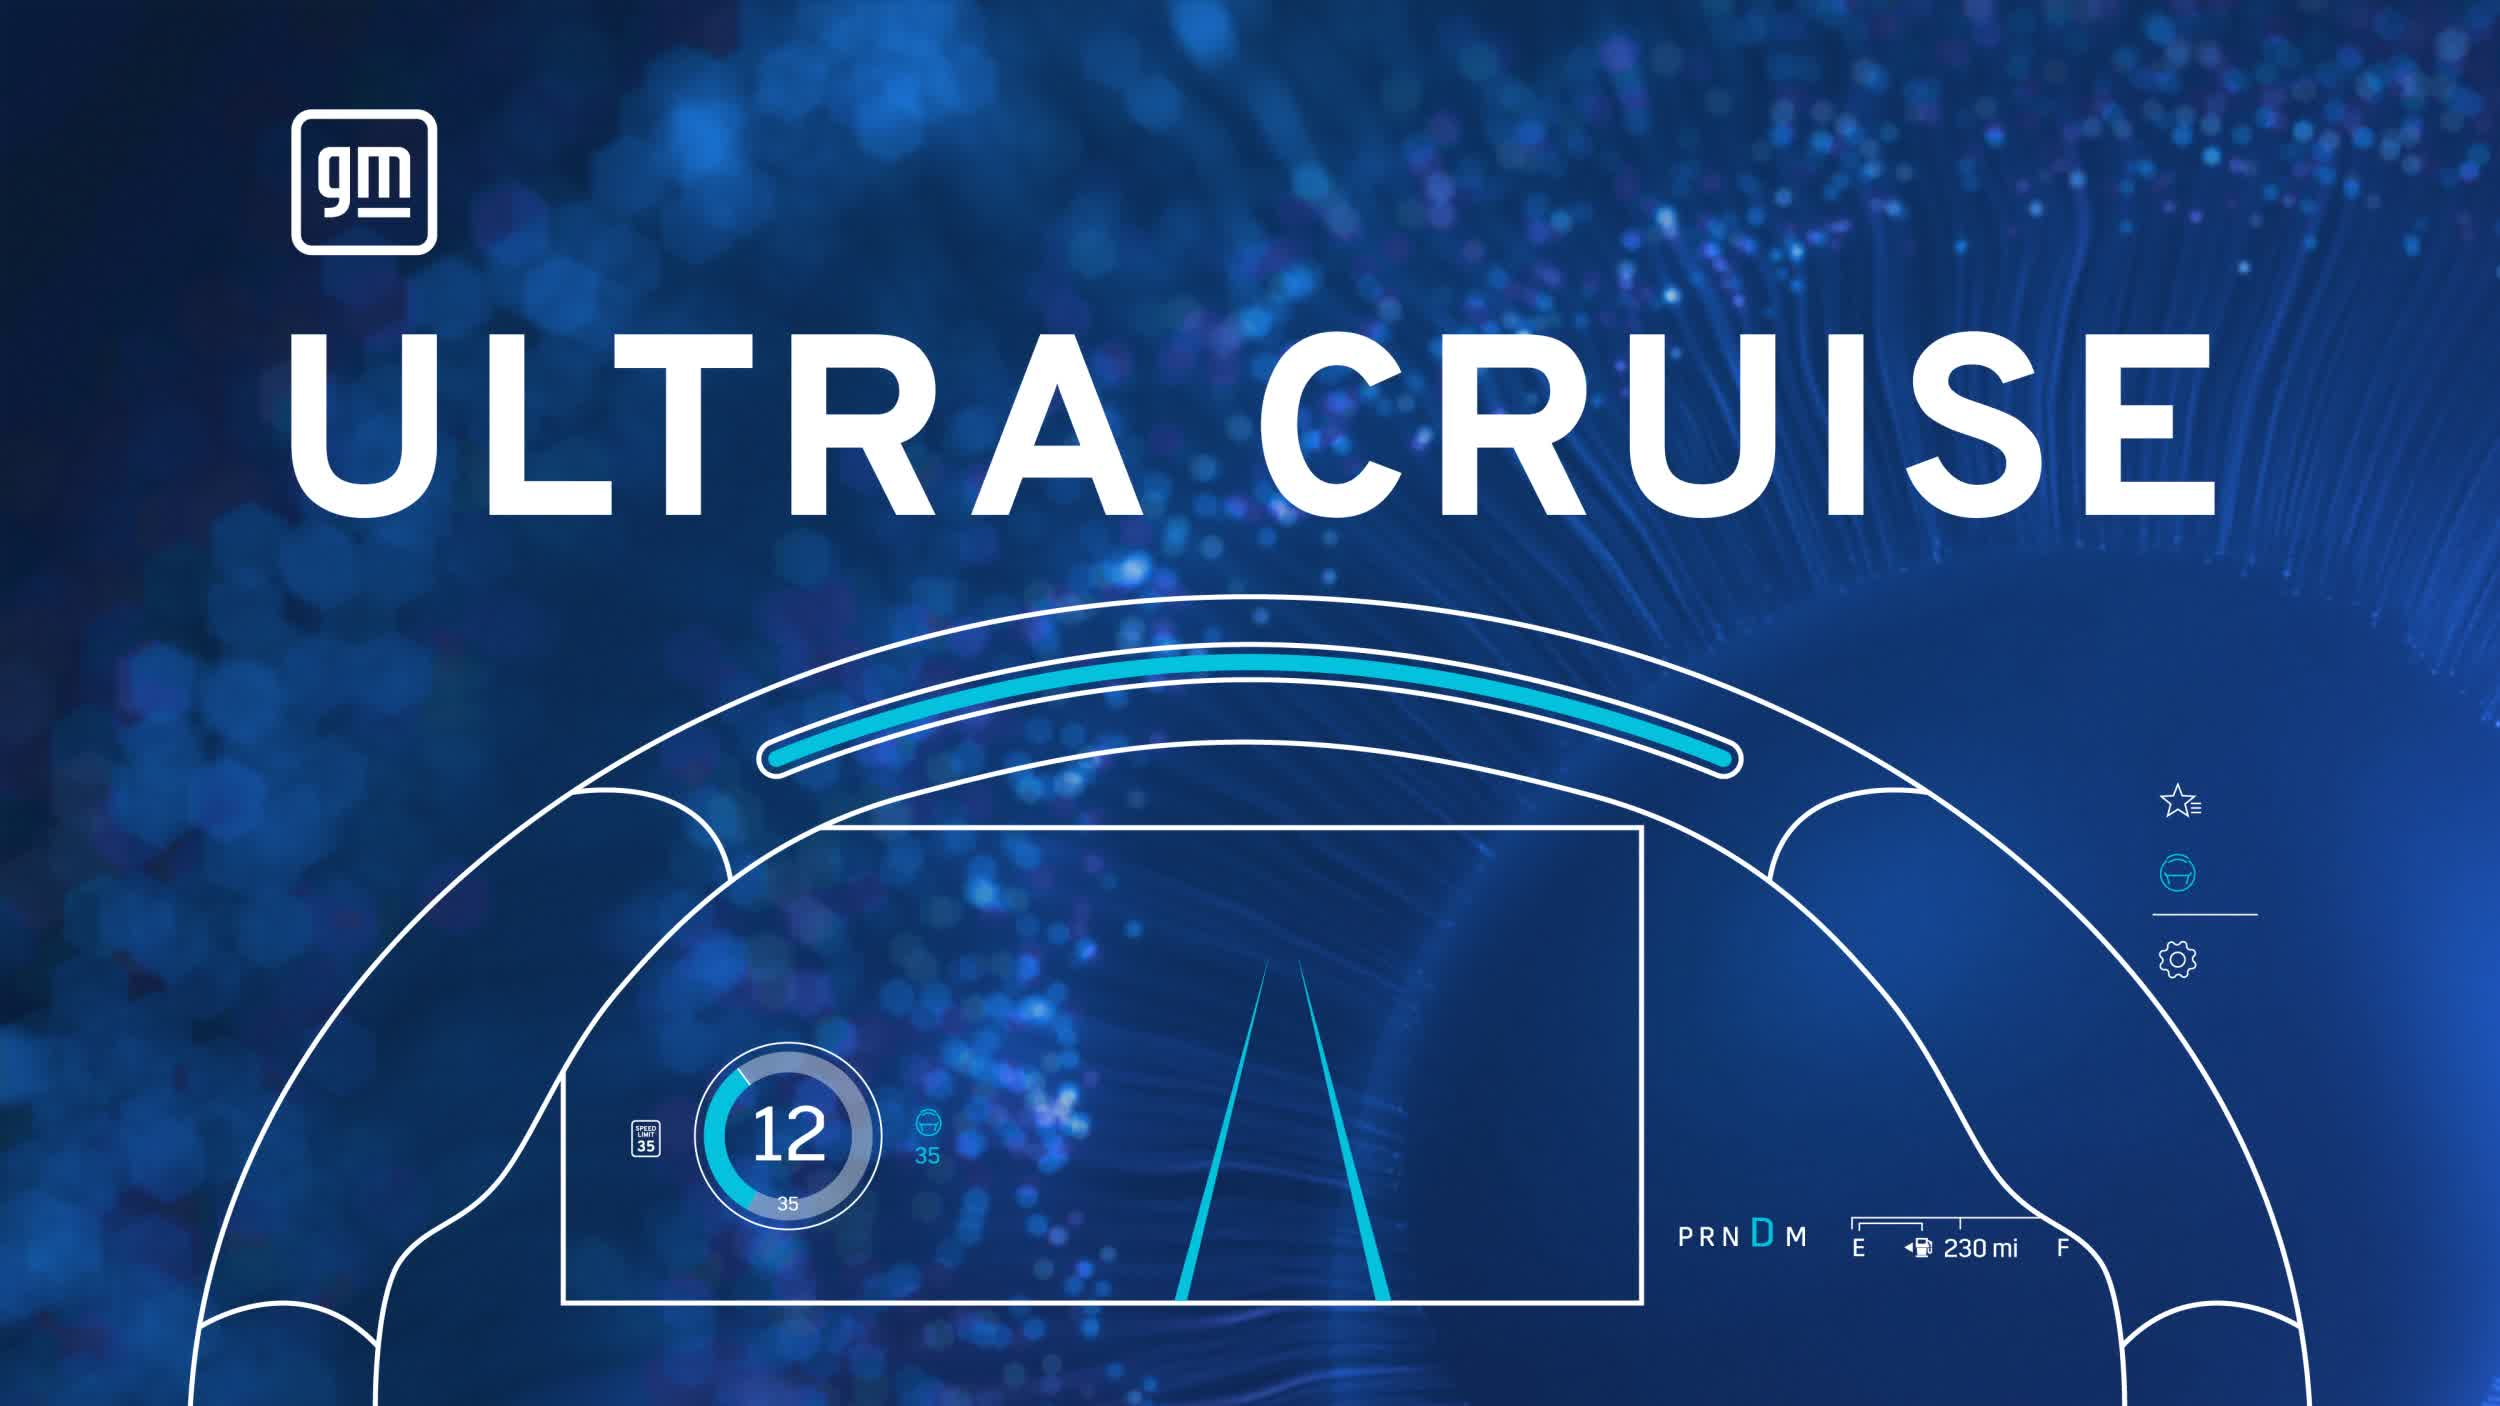 GM unveils Ultra Cruise advanced driver-assistance technology for premium vehicles